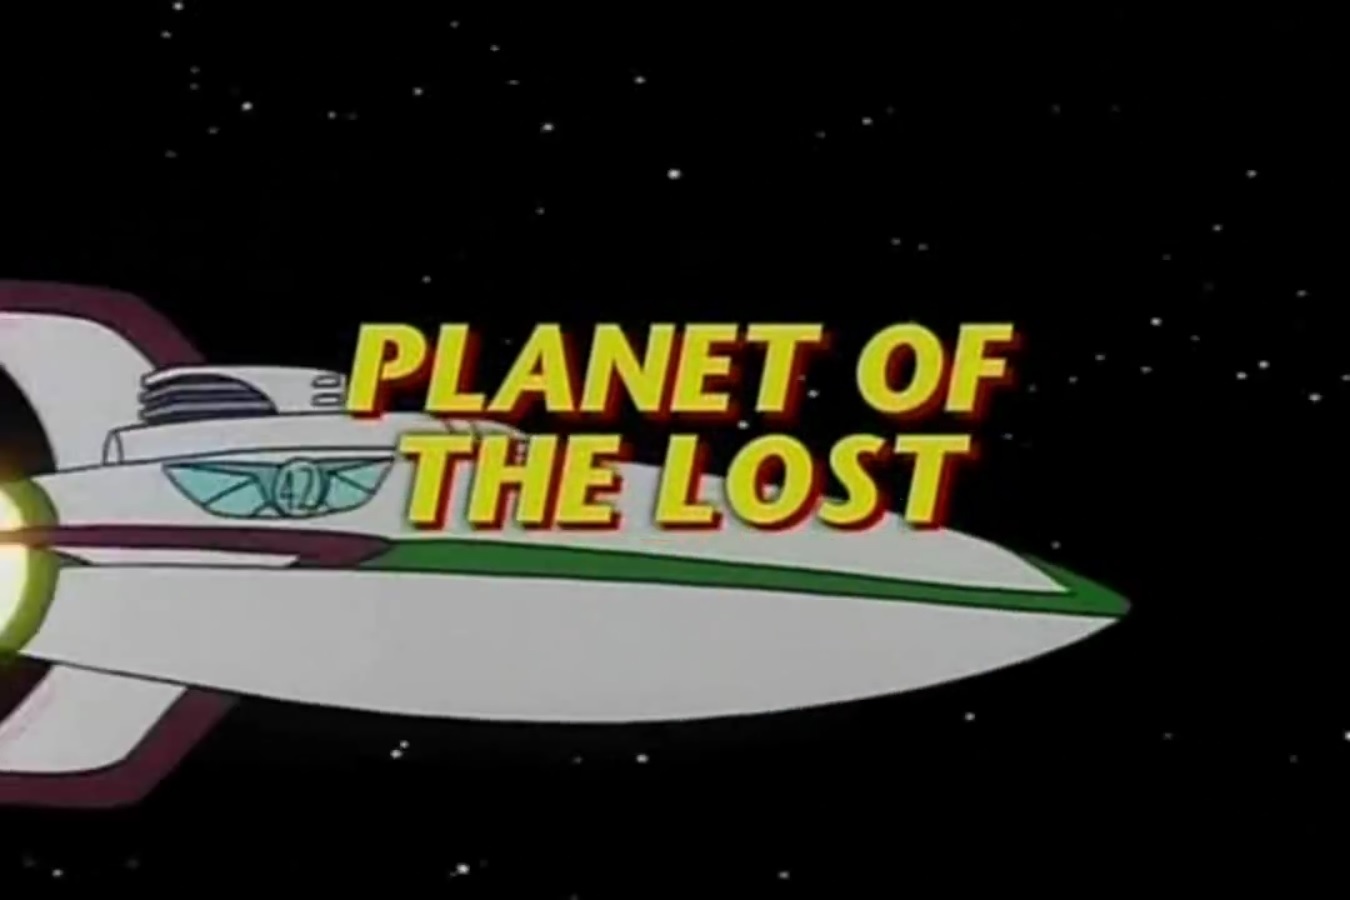 Planet of the Lost